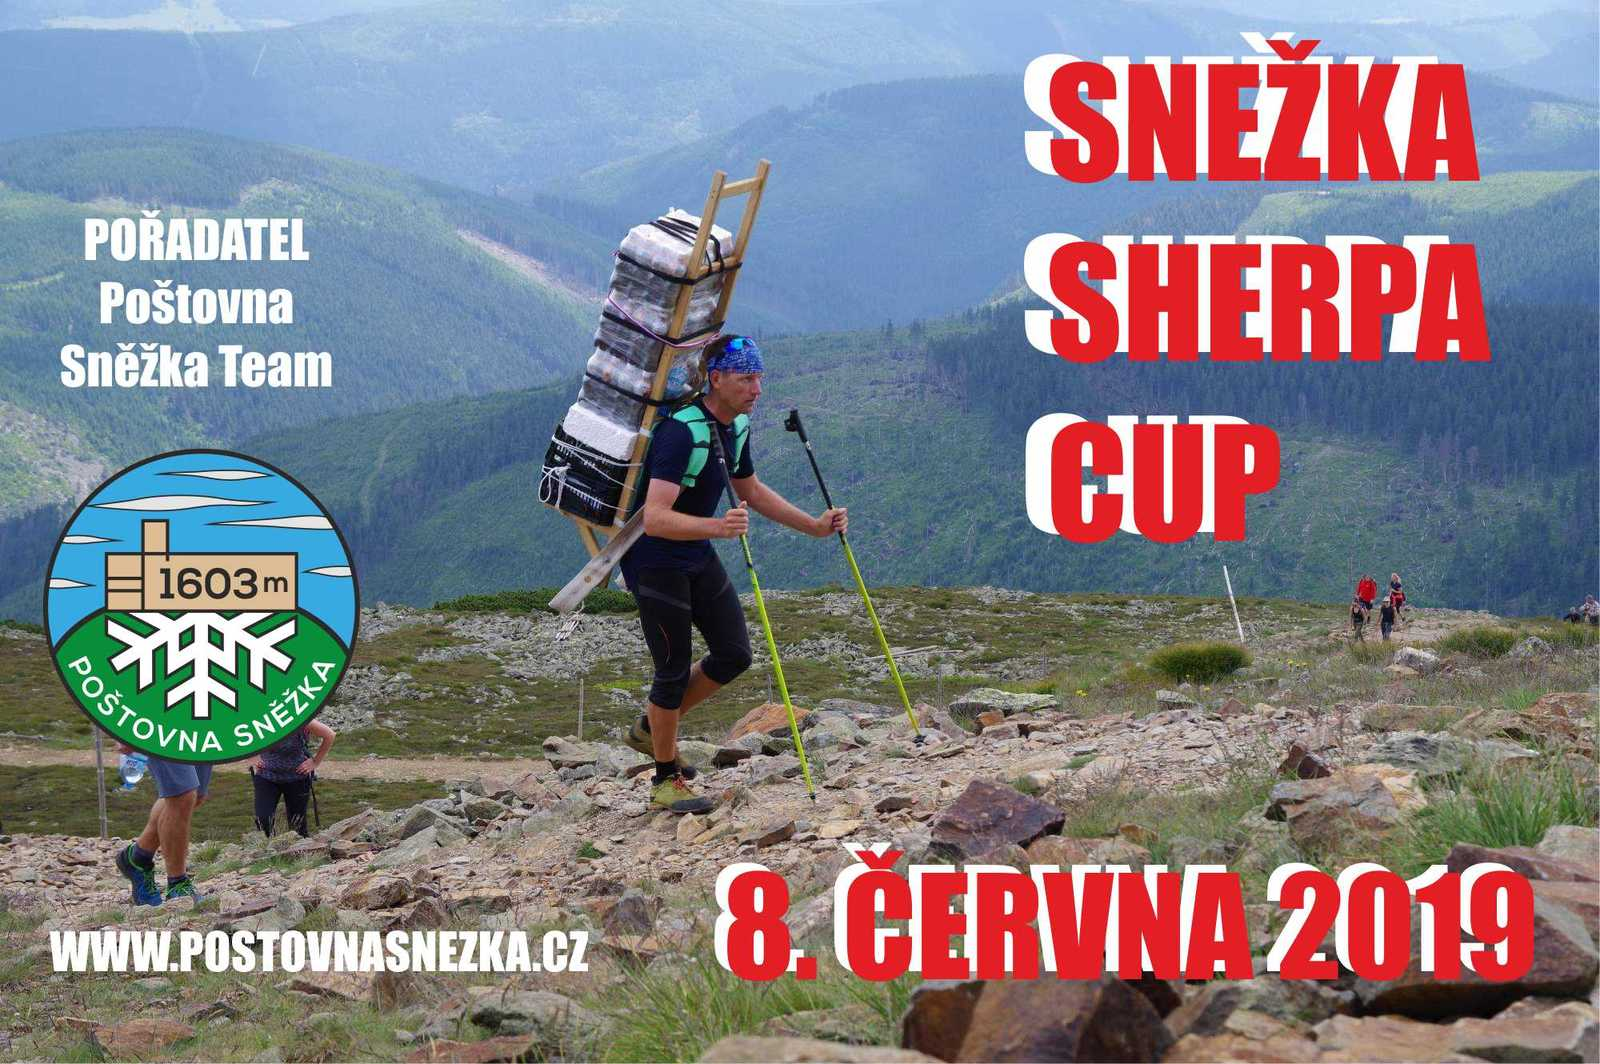 Sherpa cup 2019 upoutávka web.jpg